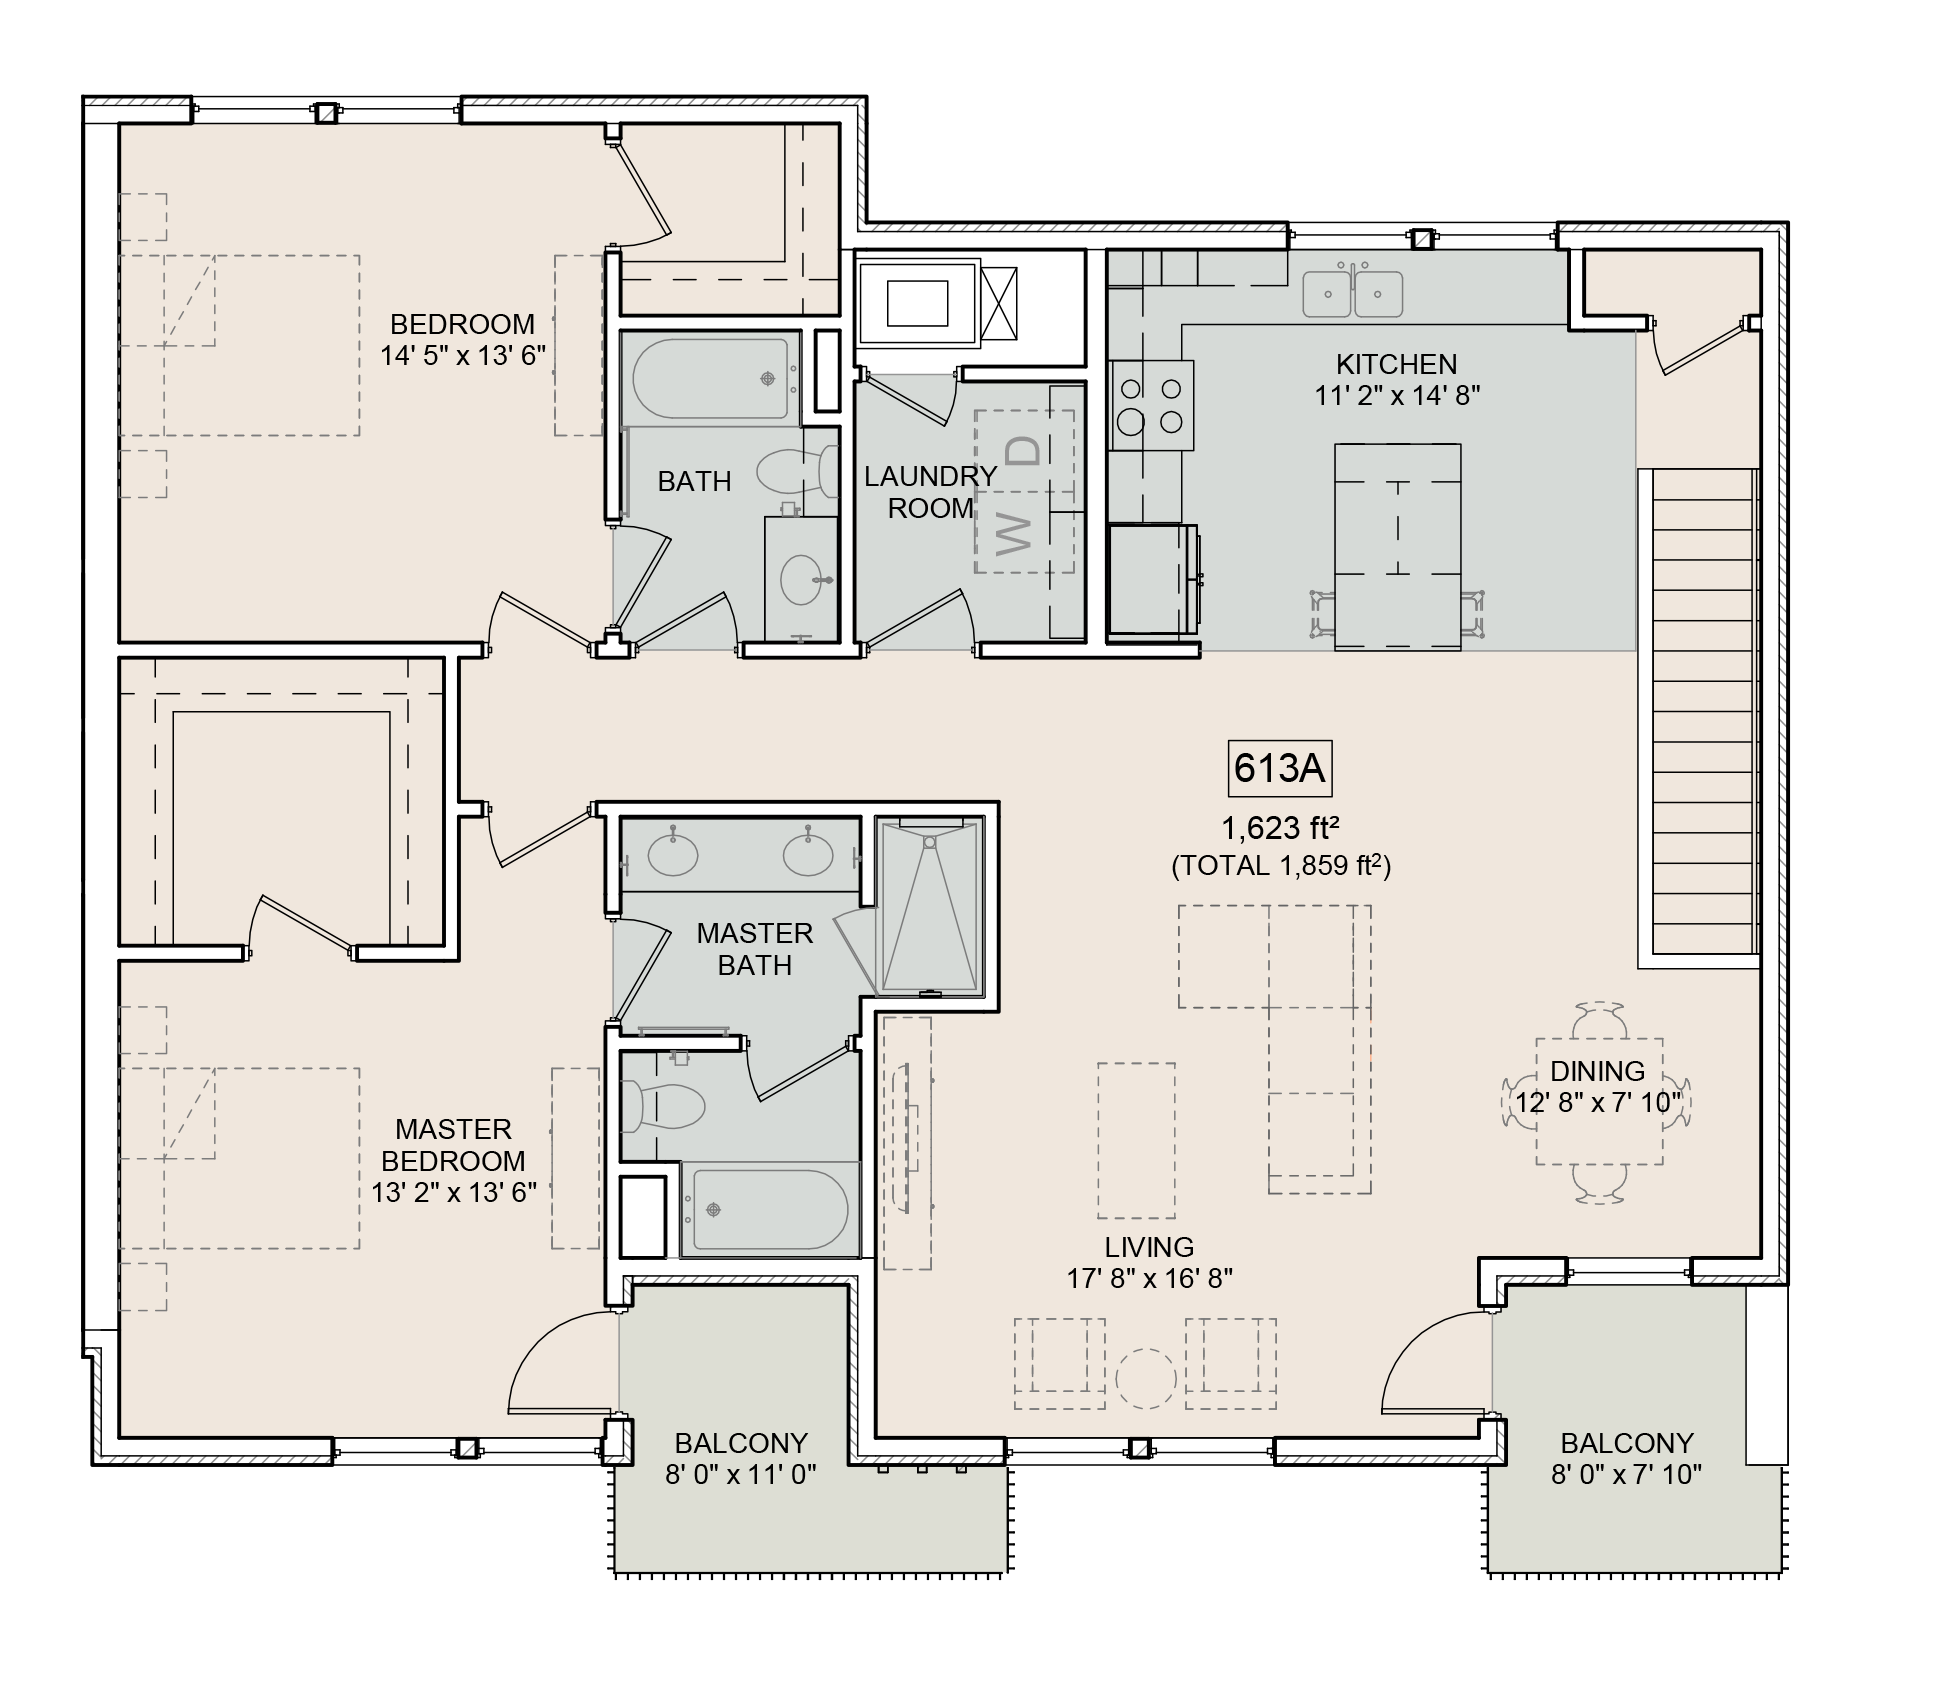 A Wynde unit with 2 Bedrooms and 2 Bathrooms with area of 1859 sq. ft